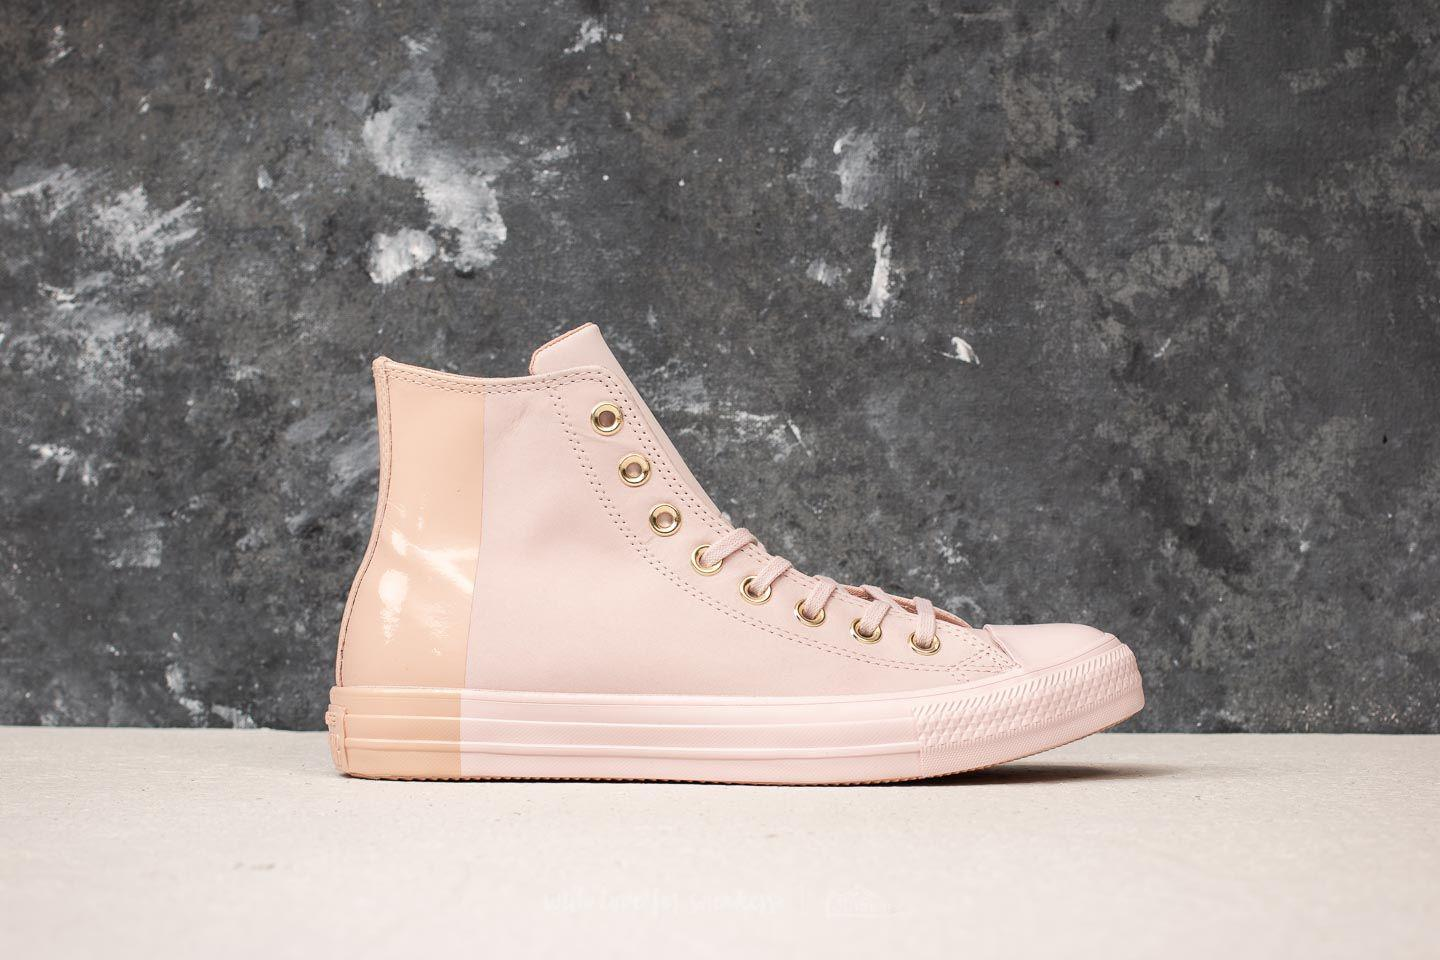 Lyst - Converse Chuck Taylor All Star Hi Barely Rose  Barely Rose in ... 12ea0157fb